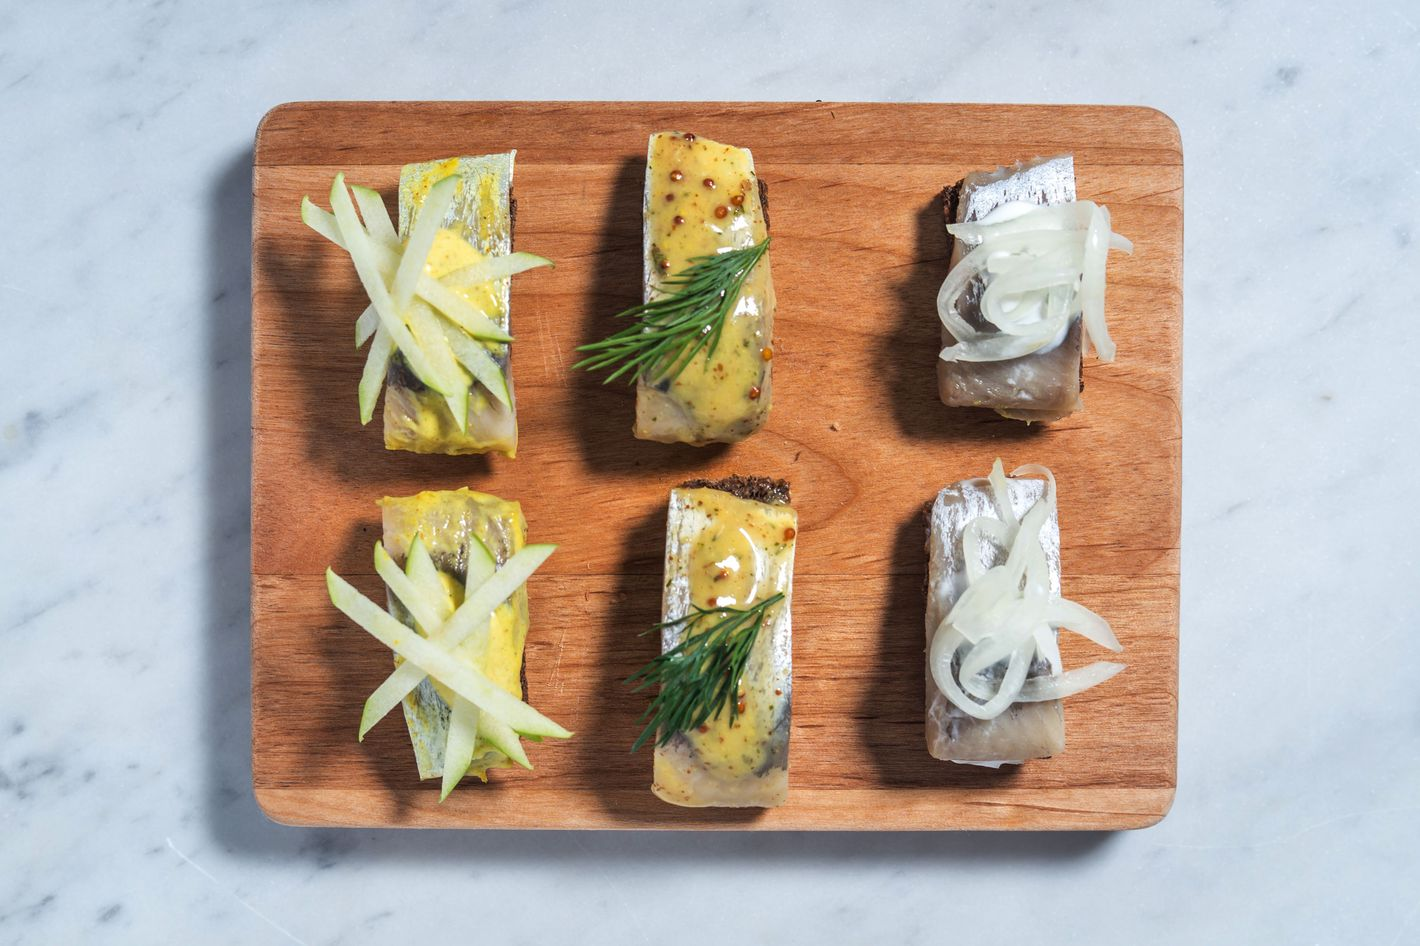 Canapés of pickled herring on pumpernickel bread: mustard and dill herring; curry herring with green apple; and pickled herring with cream sauce and pickled onions.